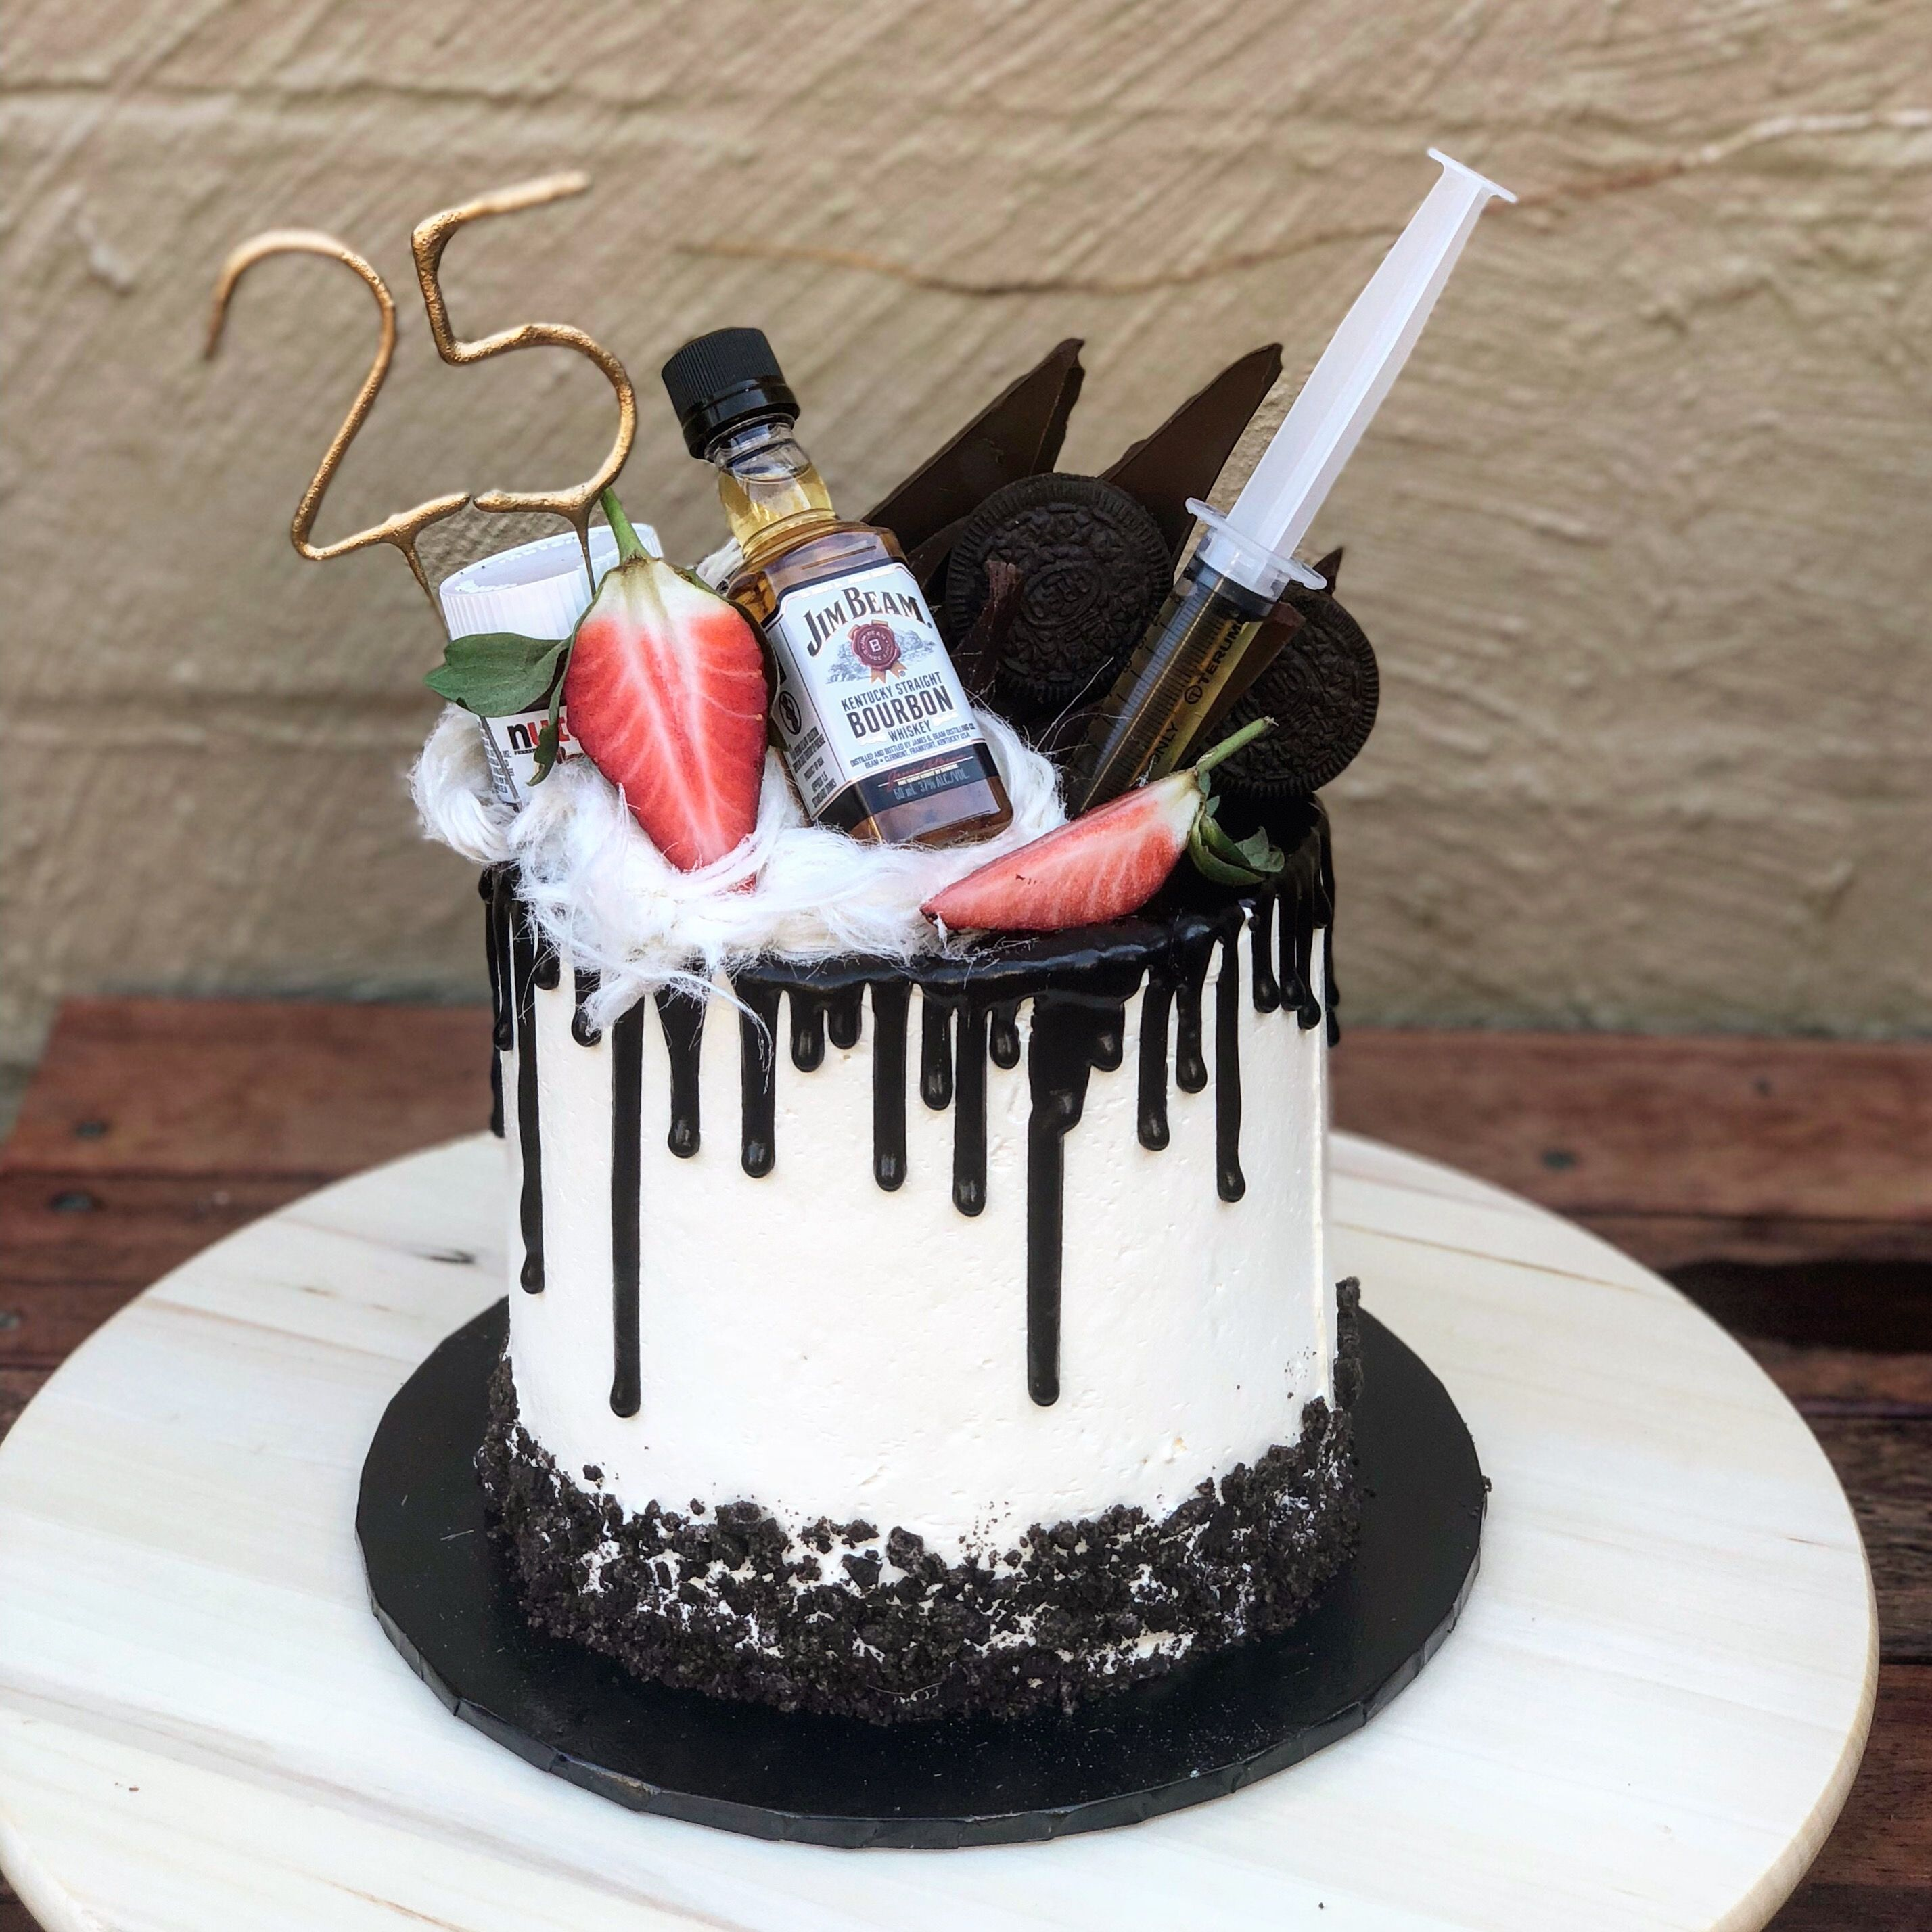 Drip Cake Chocolate Drip Persian Fairy Floss Jim Beam Syringe